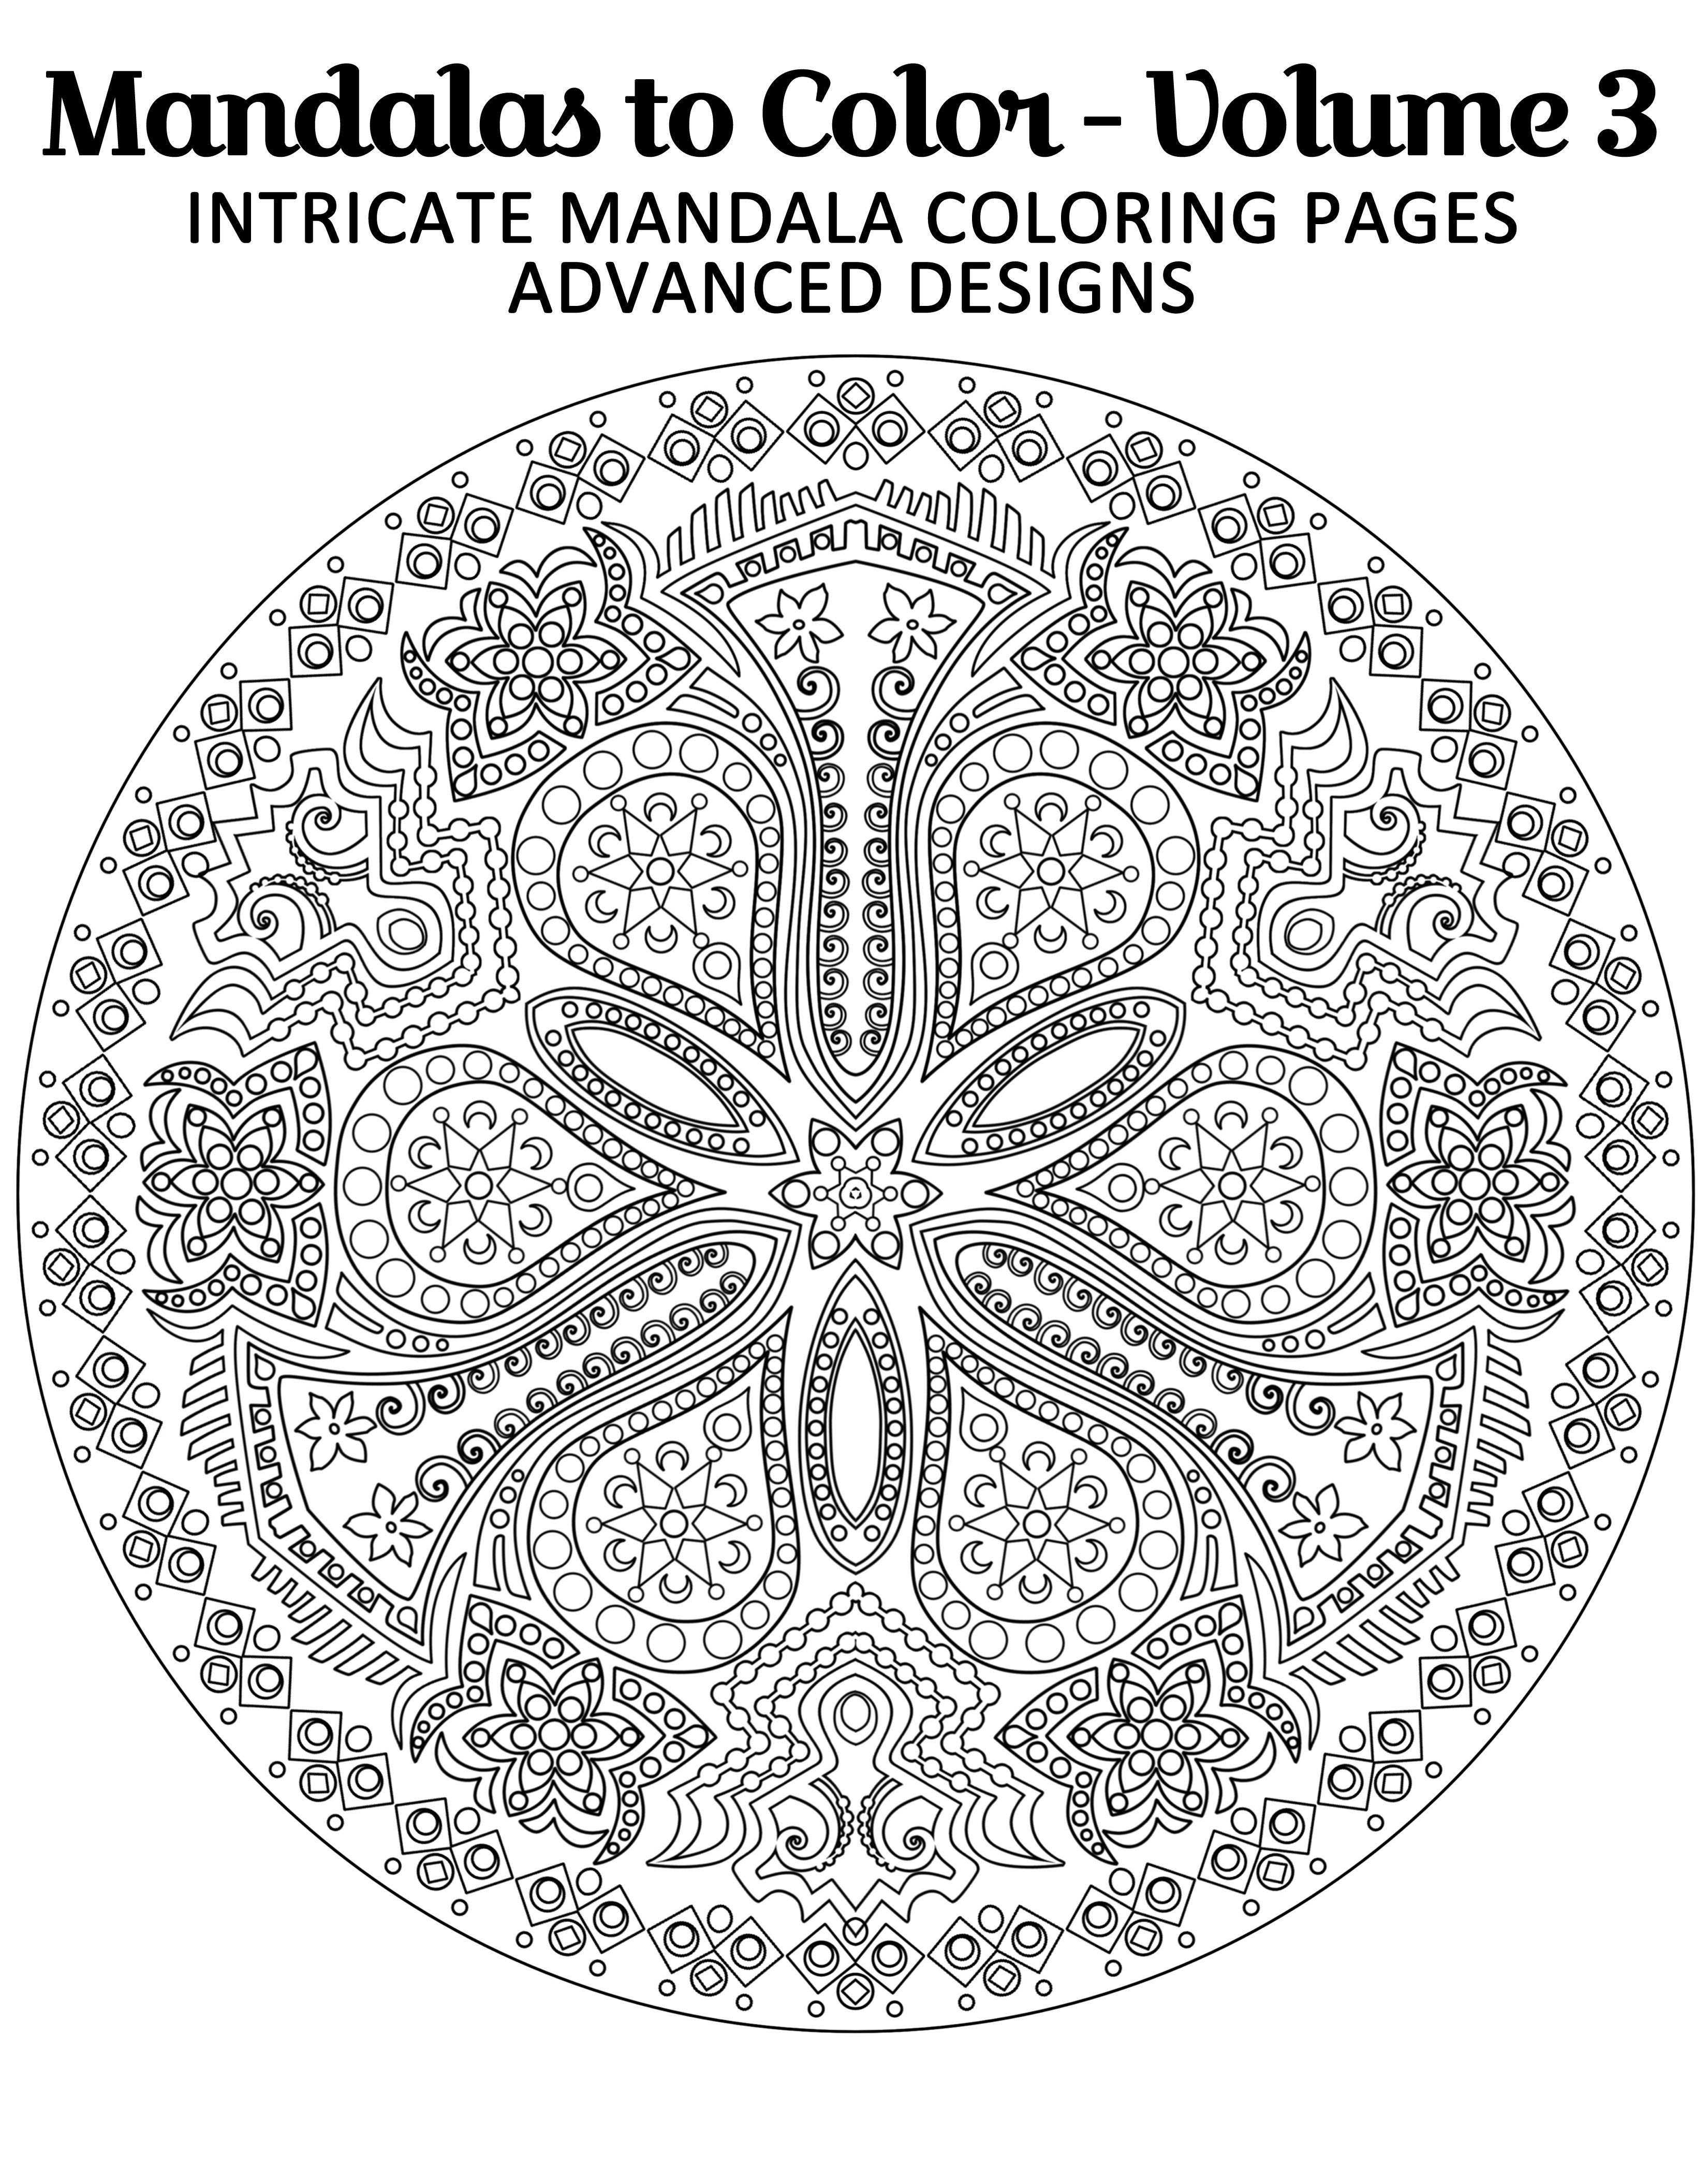 Free Mandala Coloring Page From Mandalas To Color Intricate Mandala Coloring Pages Advanced Designs Mandala Coloring Pages Mandala Coloring Coloring Pages